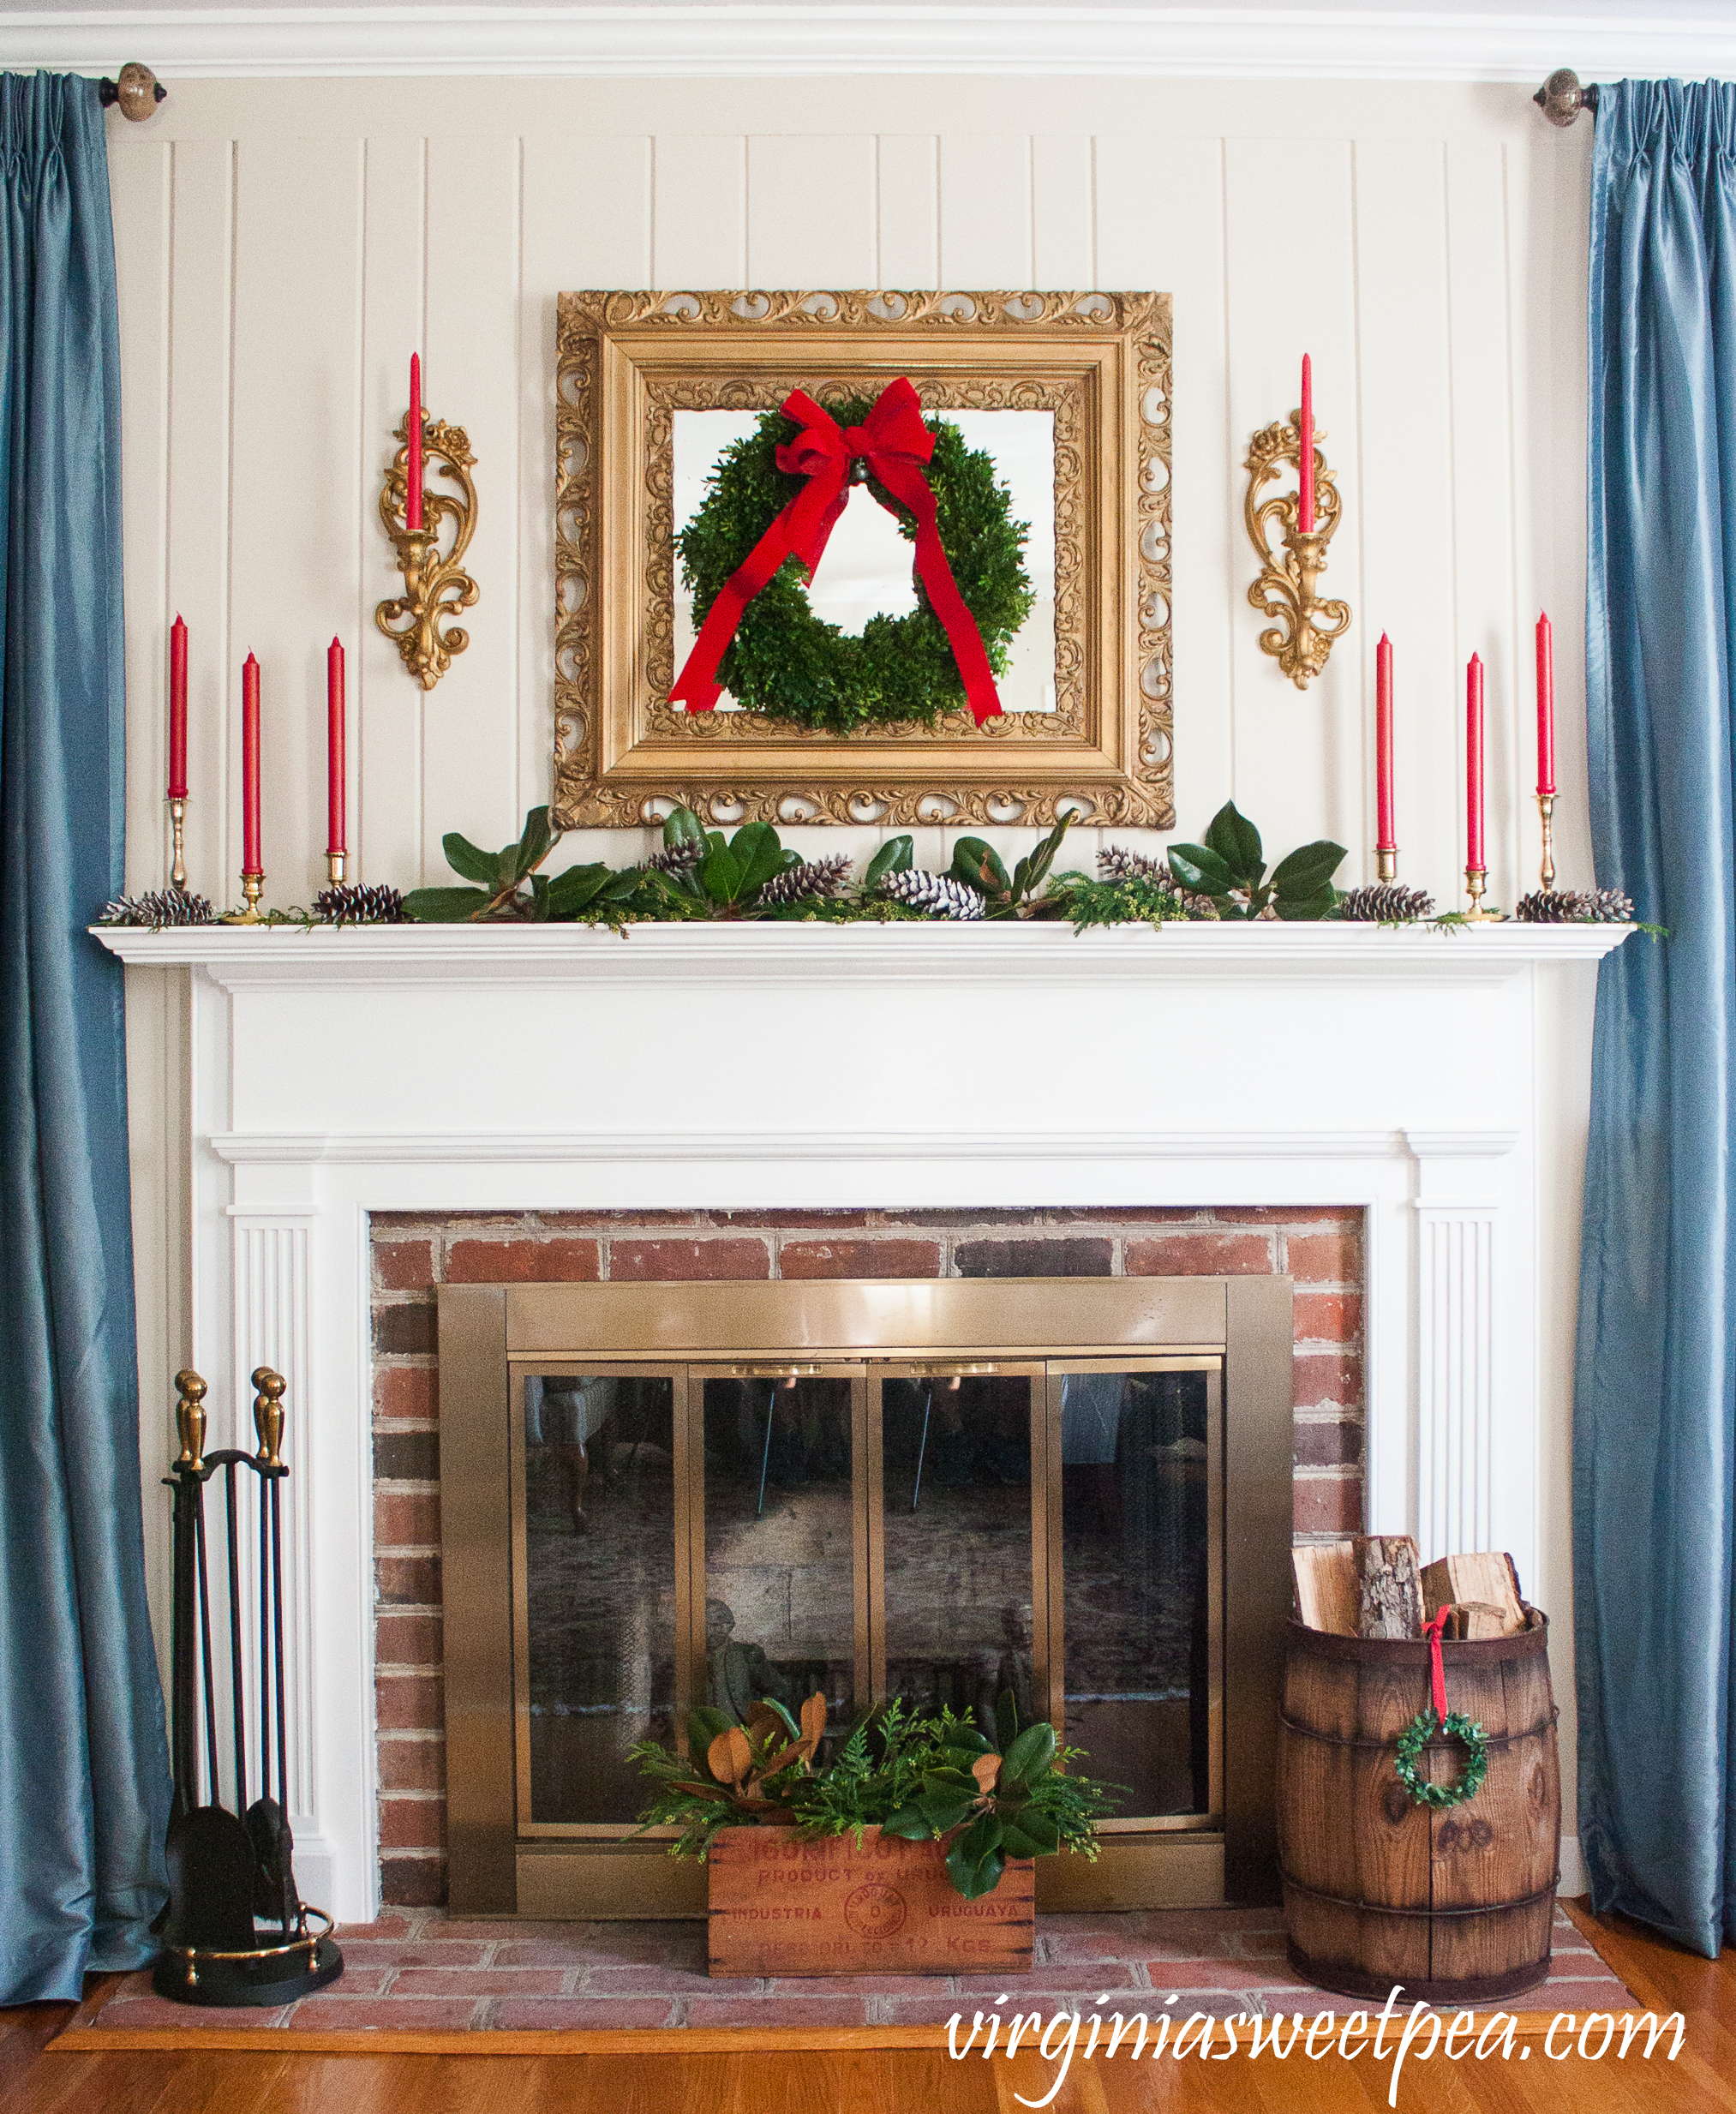 Traditional Southern Christmas Mantel - A traditional southern mantel styled for Christmas. #christmasmantel #christmasdecorating #christmas #favoritechristmasideas